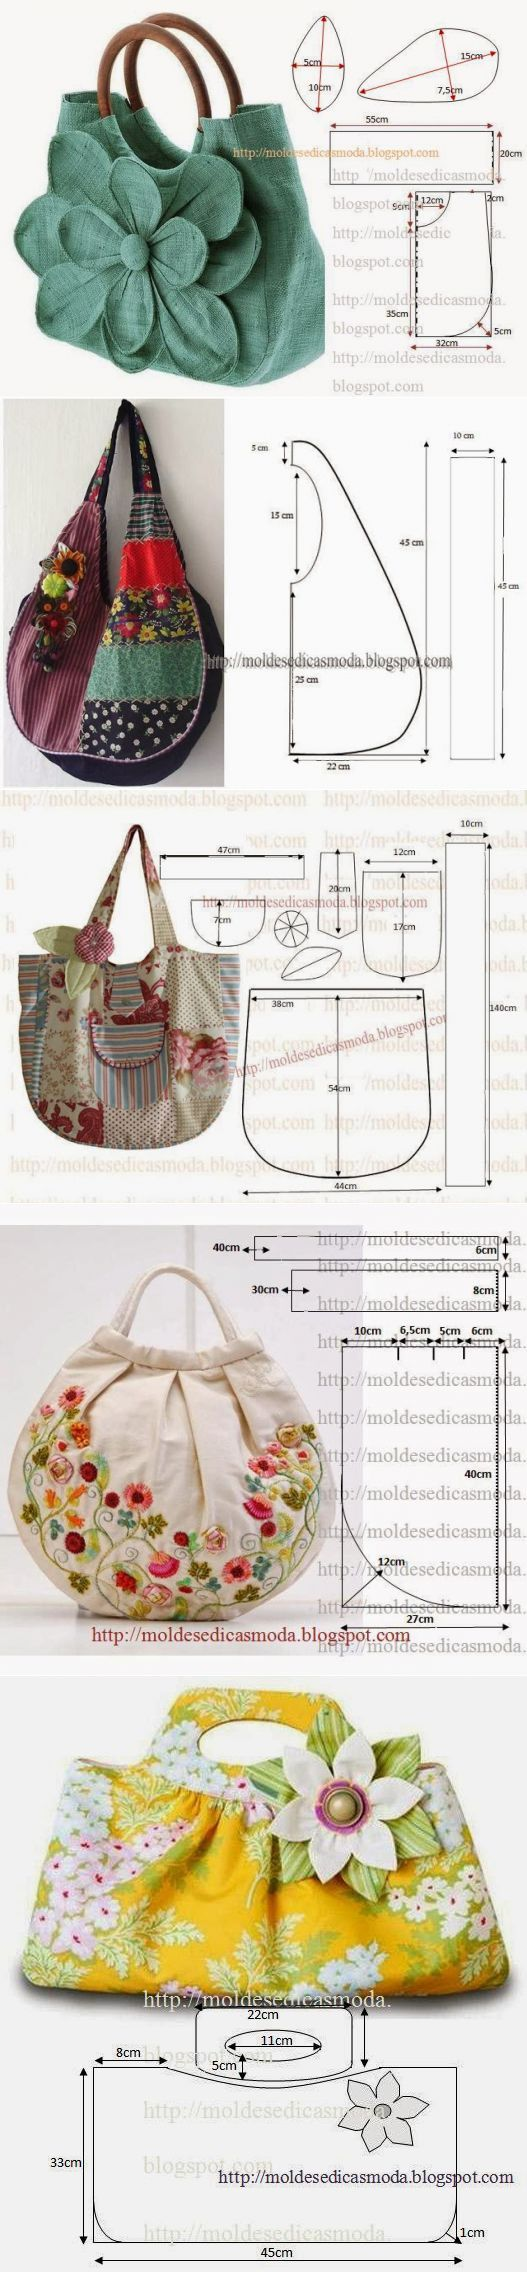 Bags + pattern.- main page only. Site does not have info on these purses